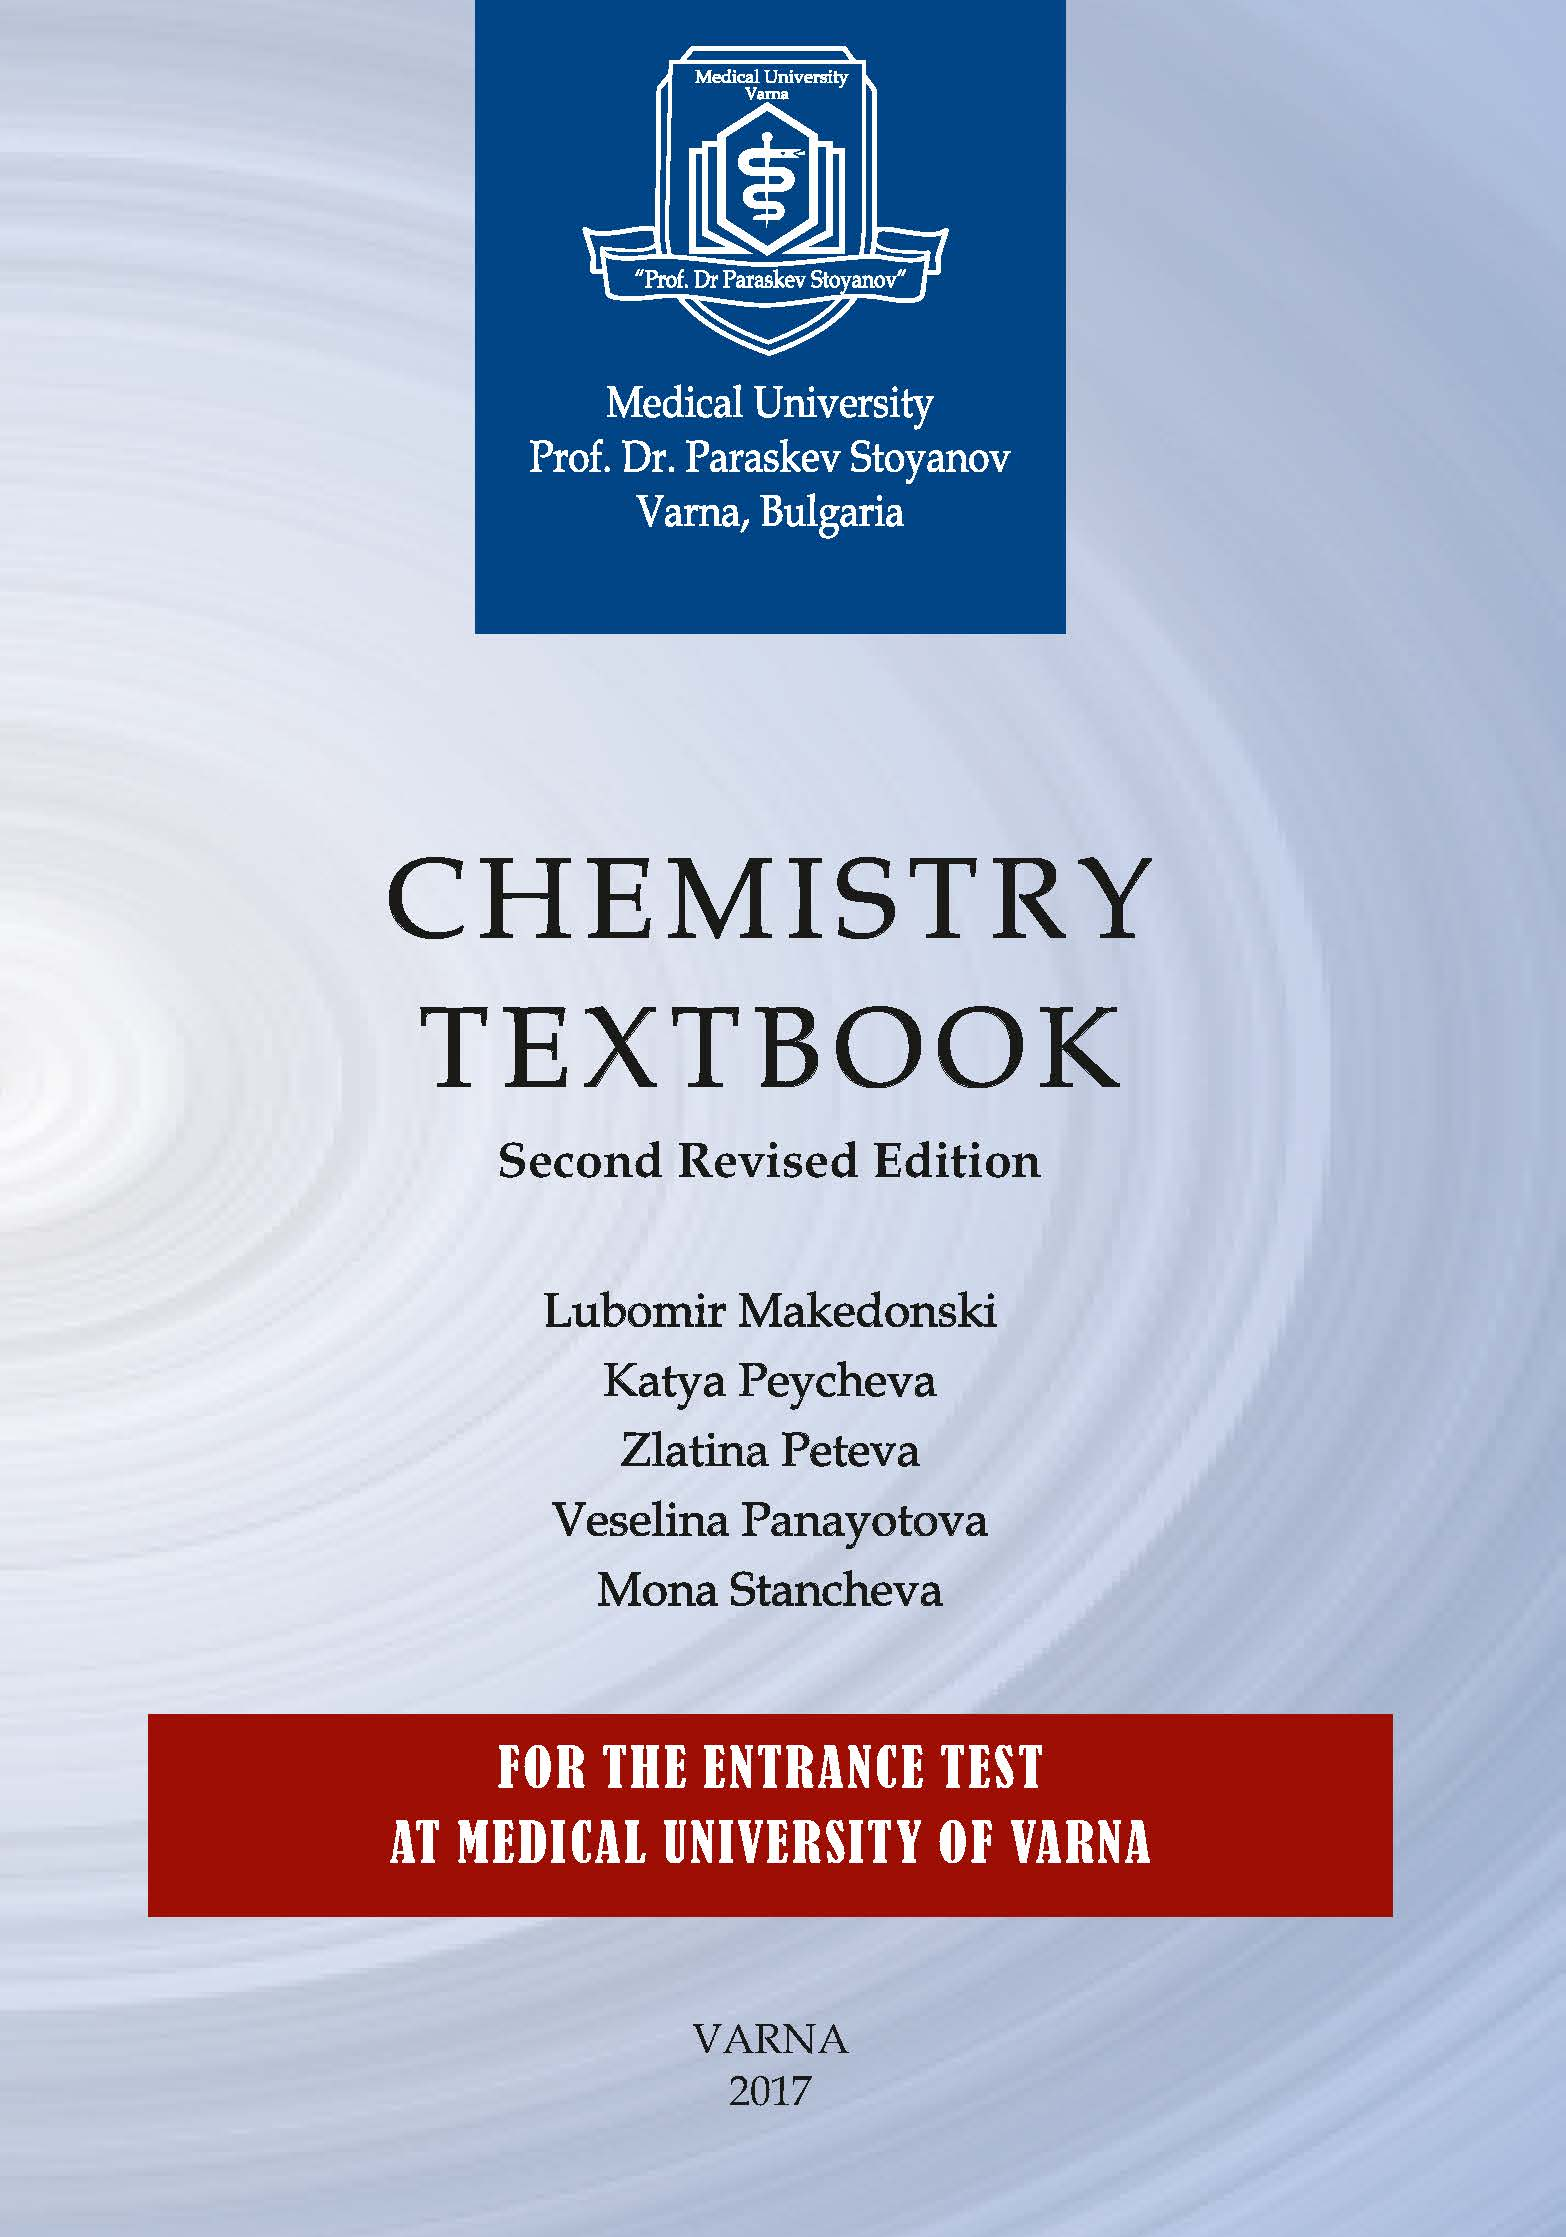 Chemistry Textbook For The Entrance Test at Varna Medical University Is Available as of Today